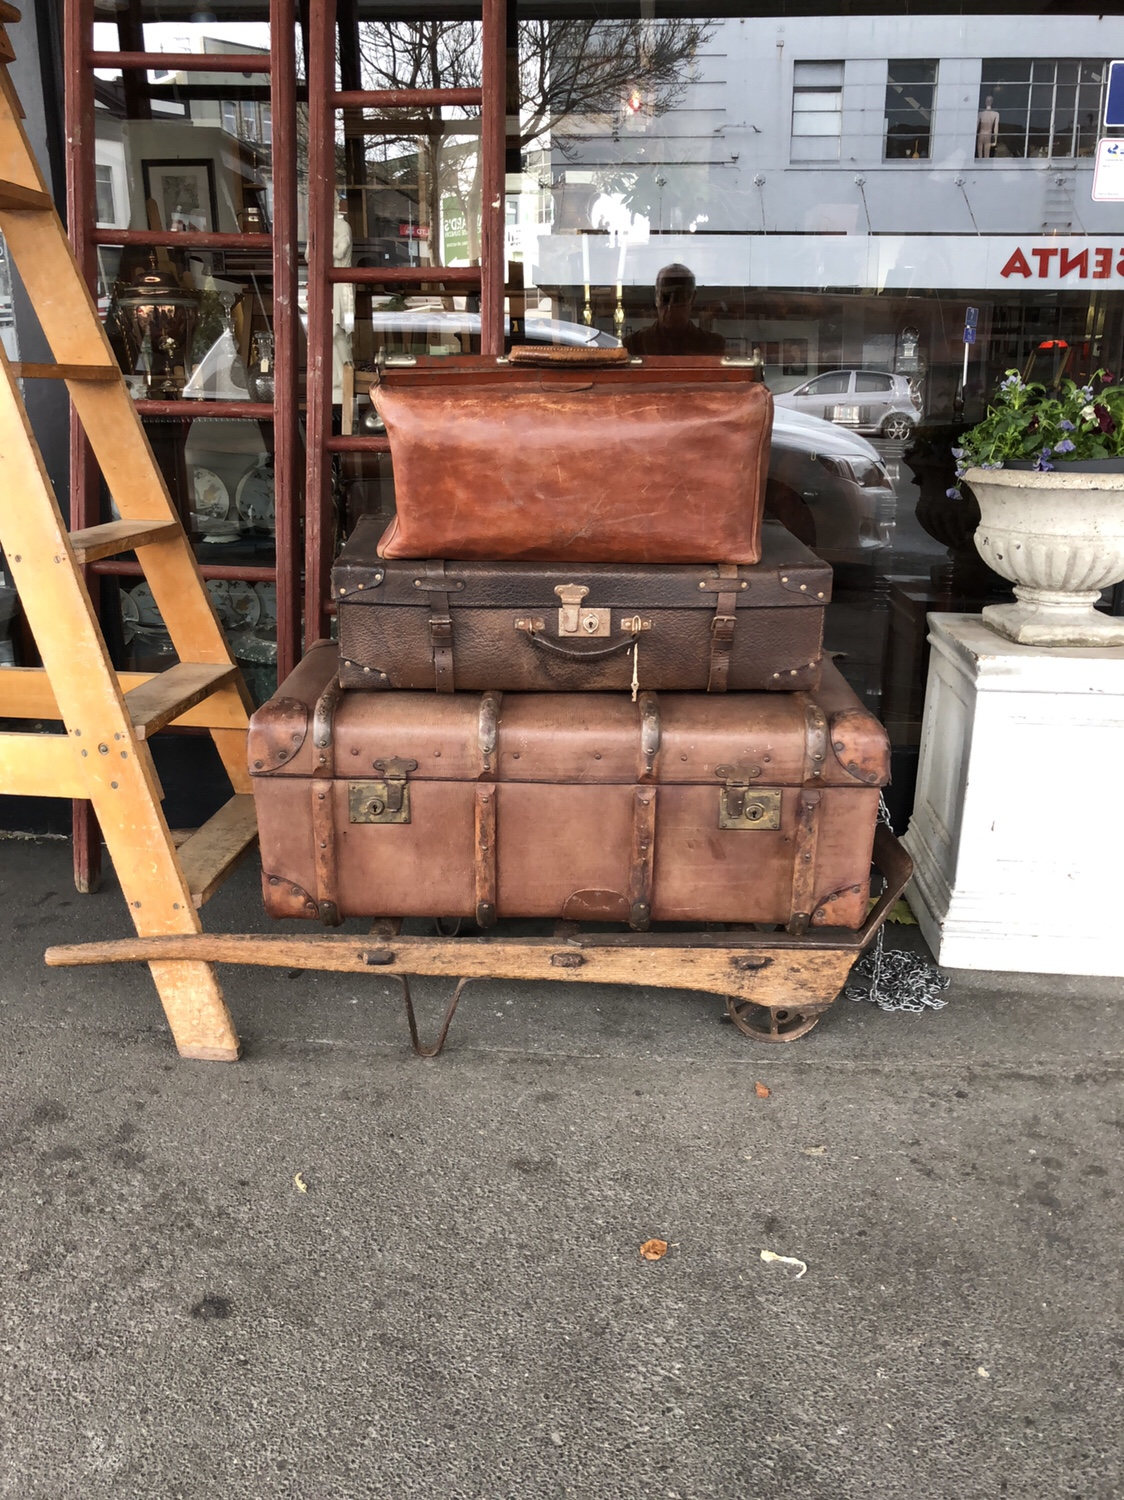 100. A SELECTION OF VINTAGE LUGGAGE.